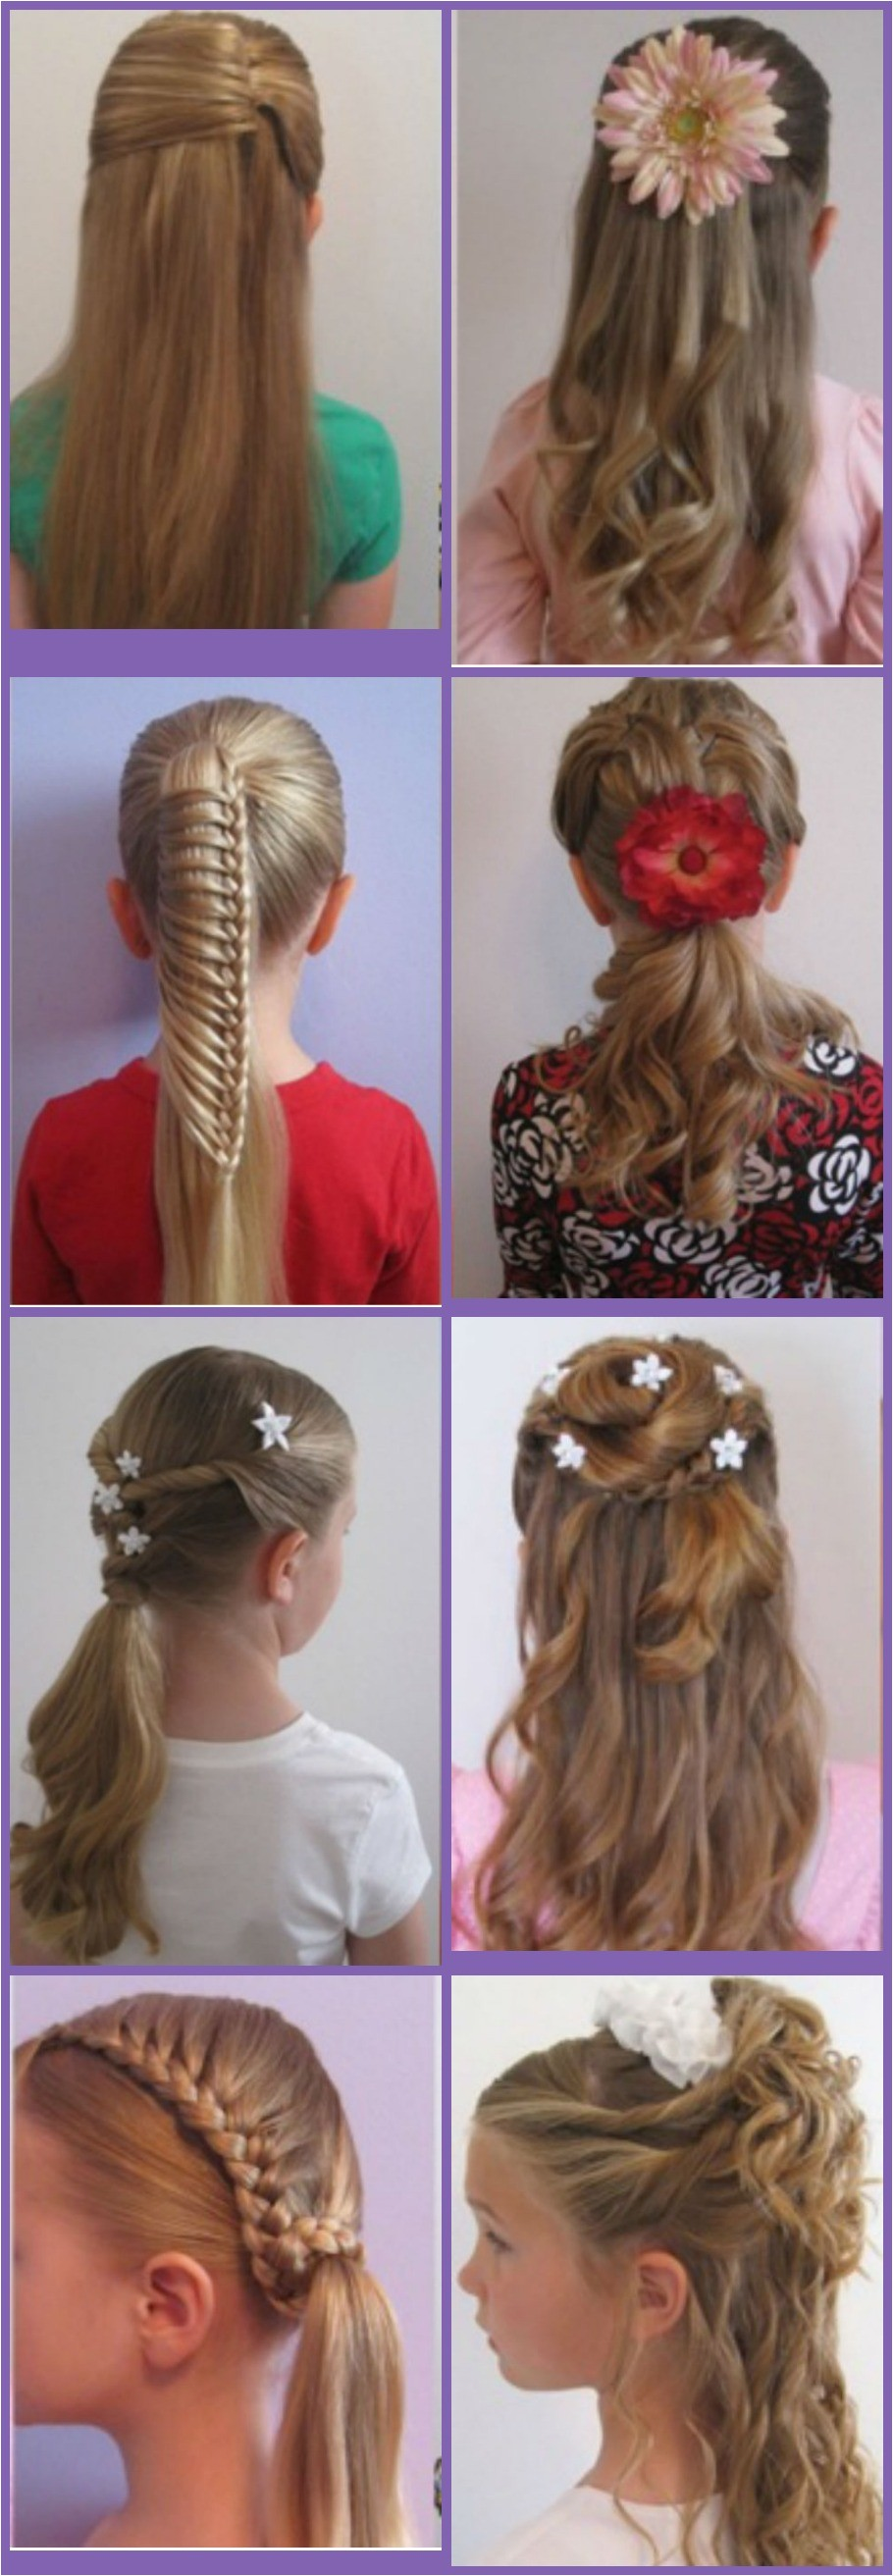 Style Easy Hairstyles For Teenage Girl Different hairstyles ideas of Simple Hairstyles For Teen